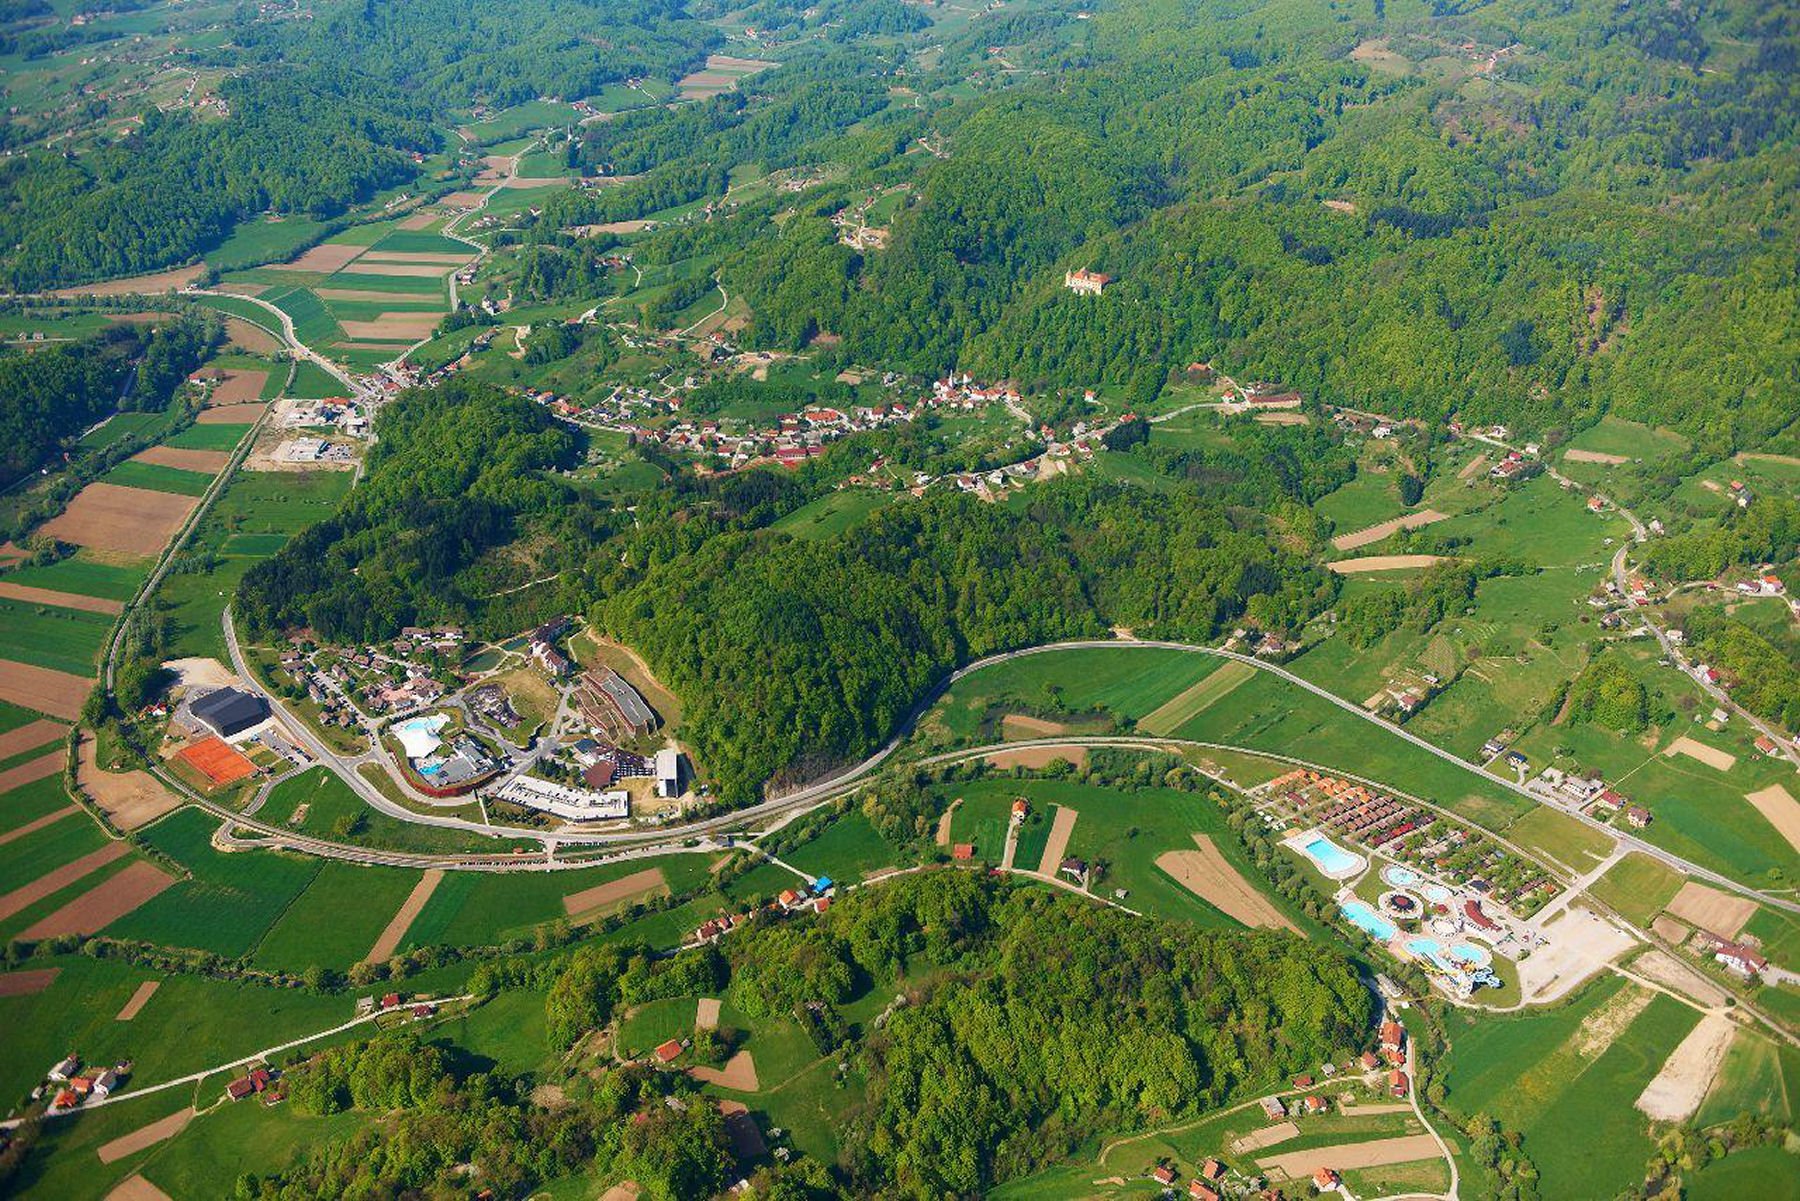 The village of Podcetrtek and the Terme Olimia thermal spa